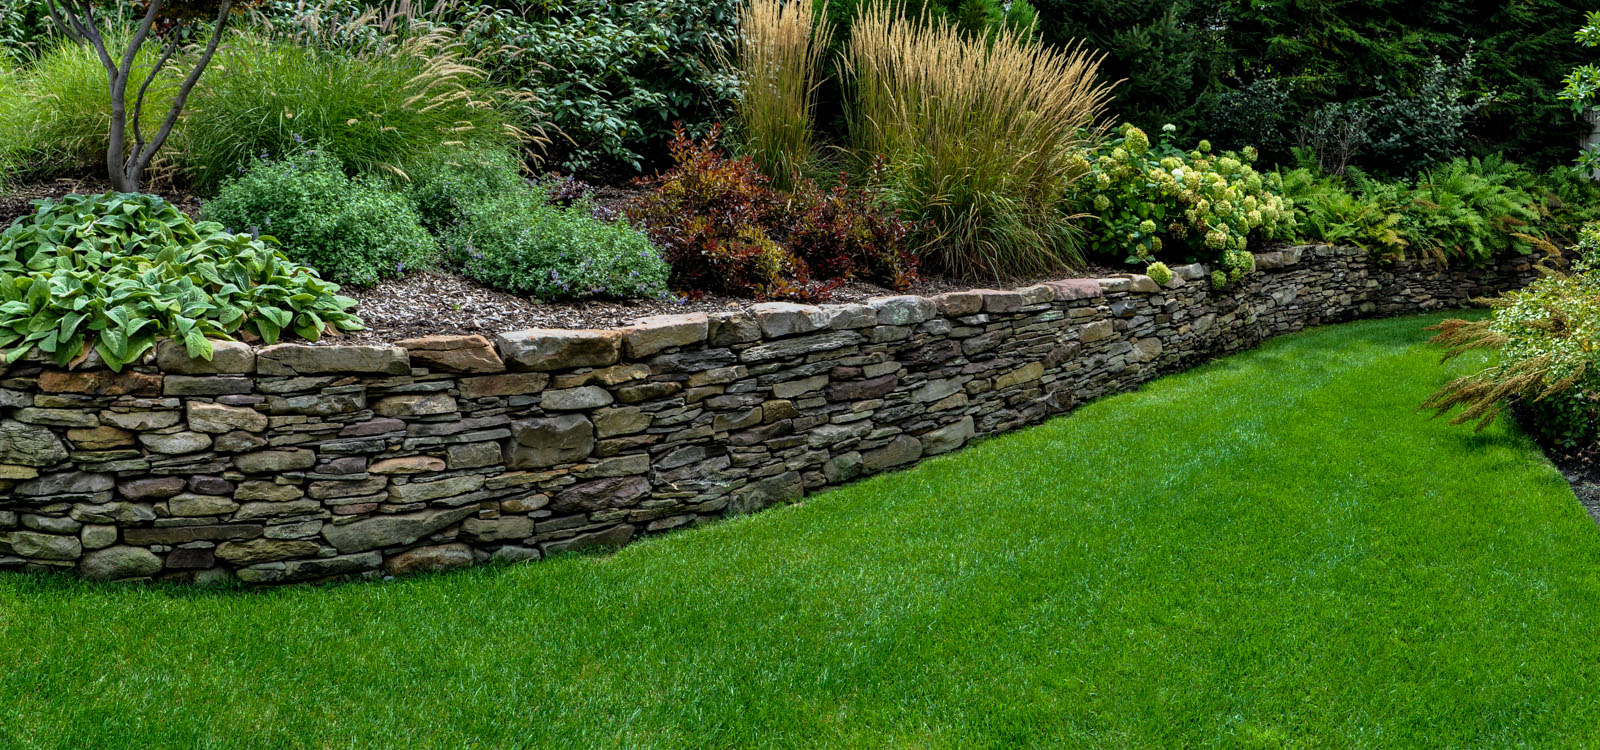 Landscape design services clc landscape design for Rock wall garden designs